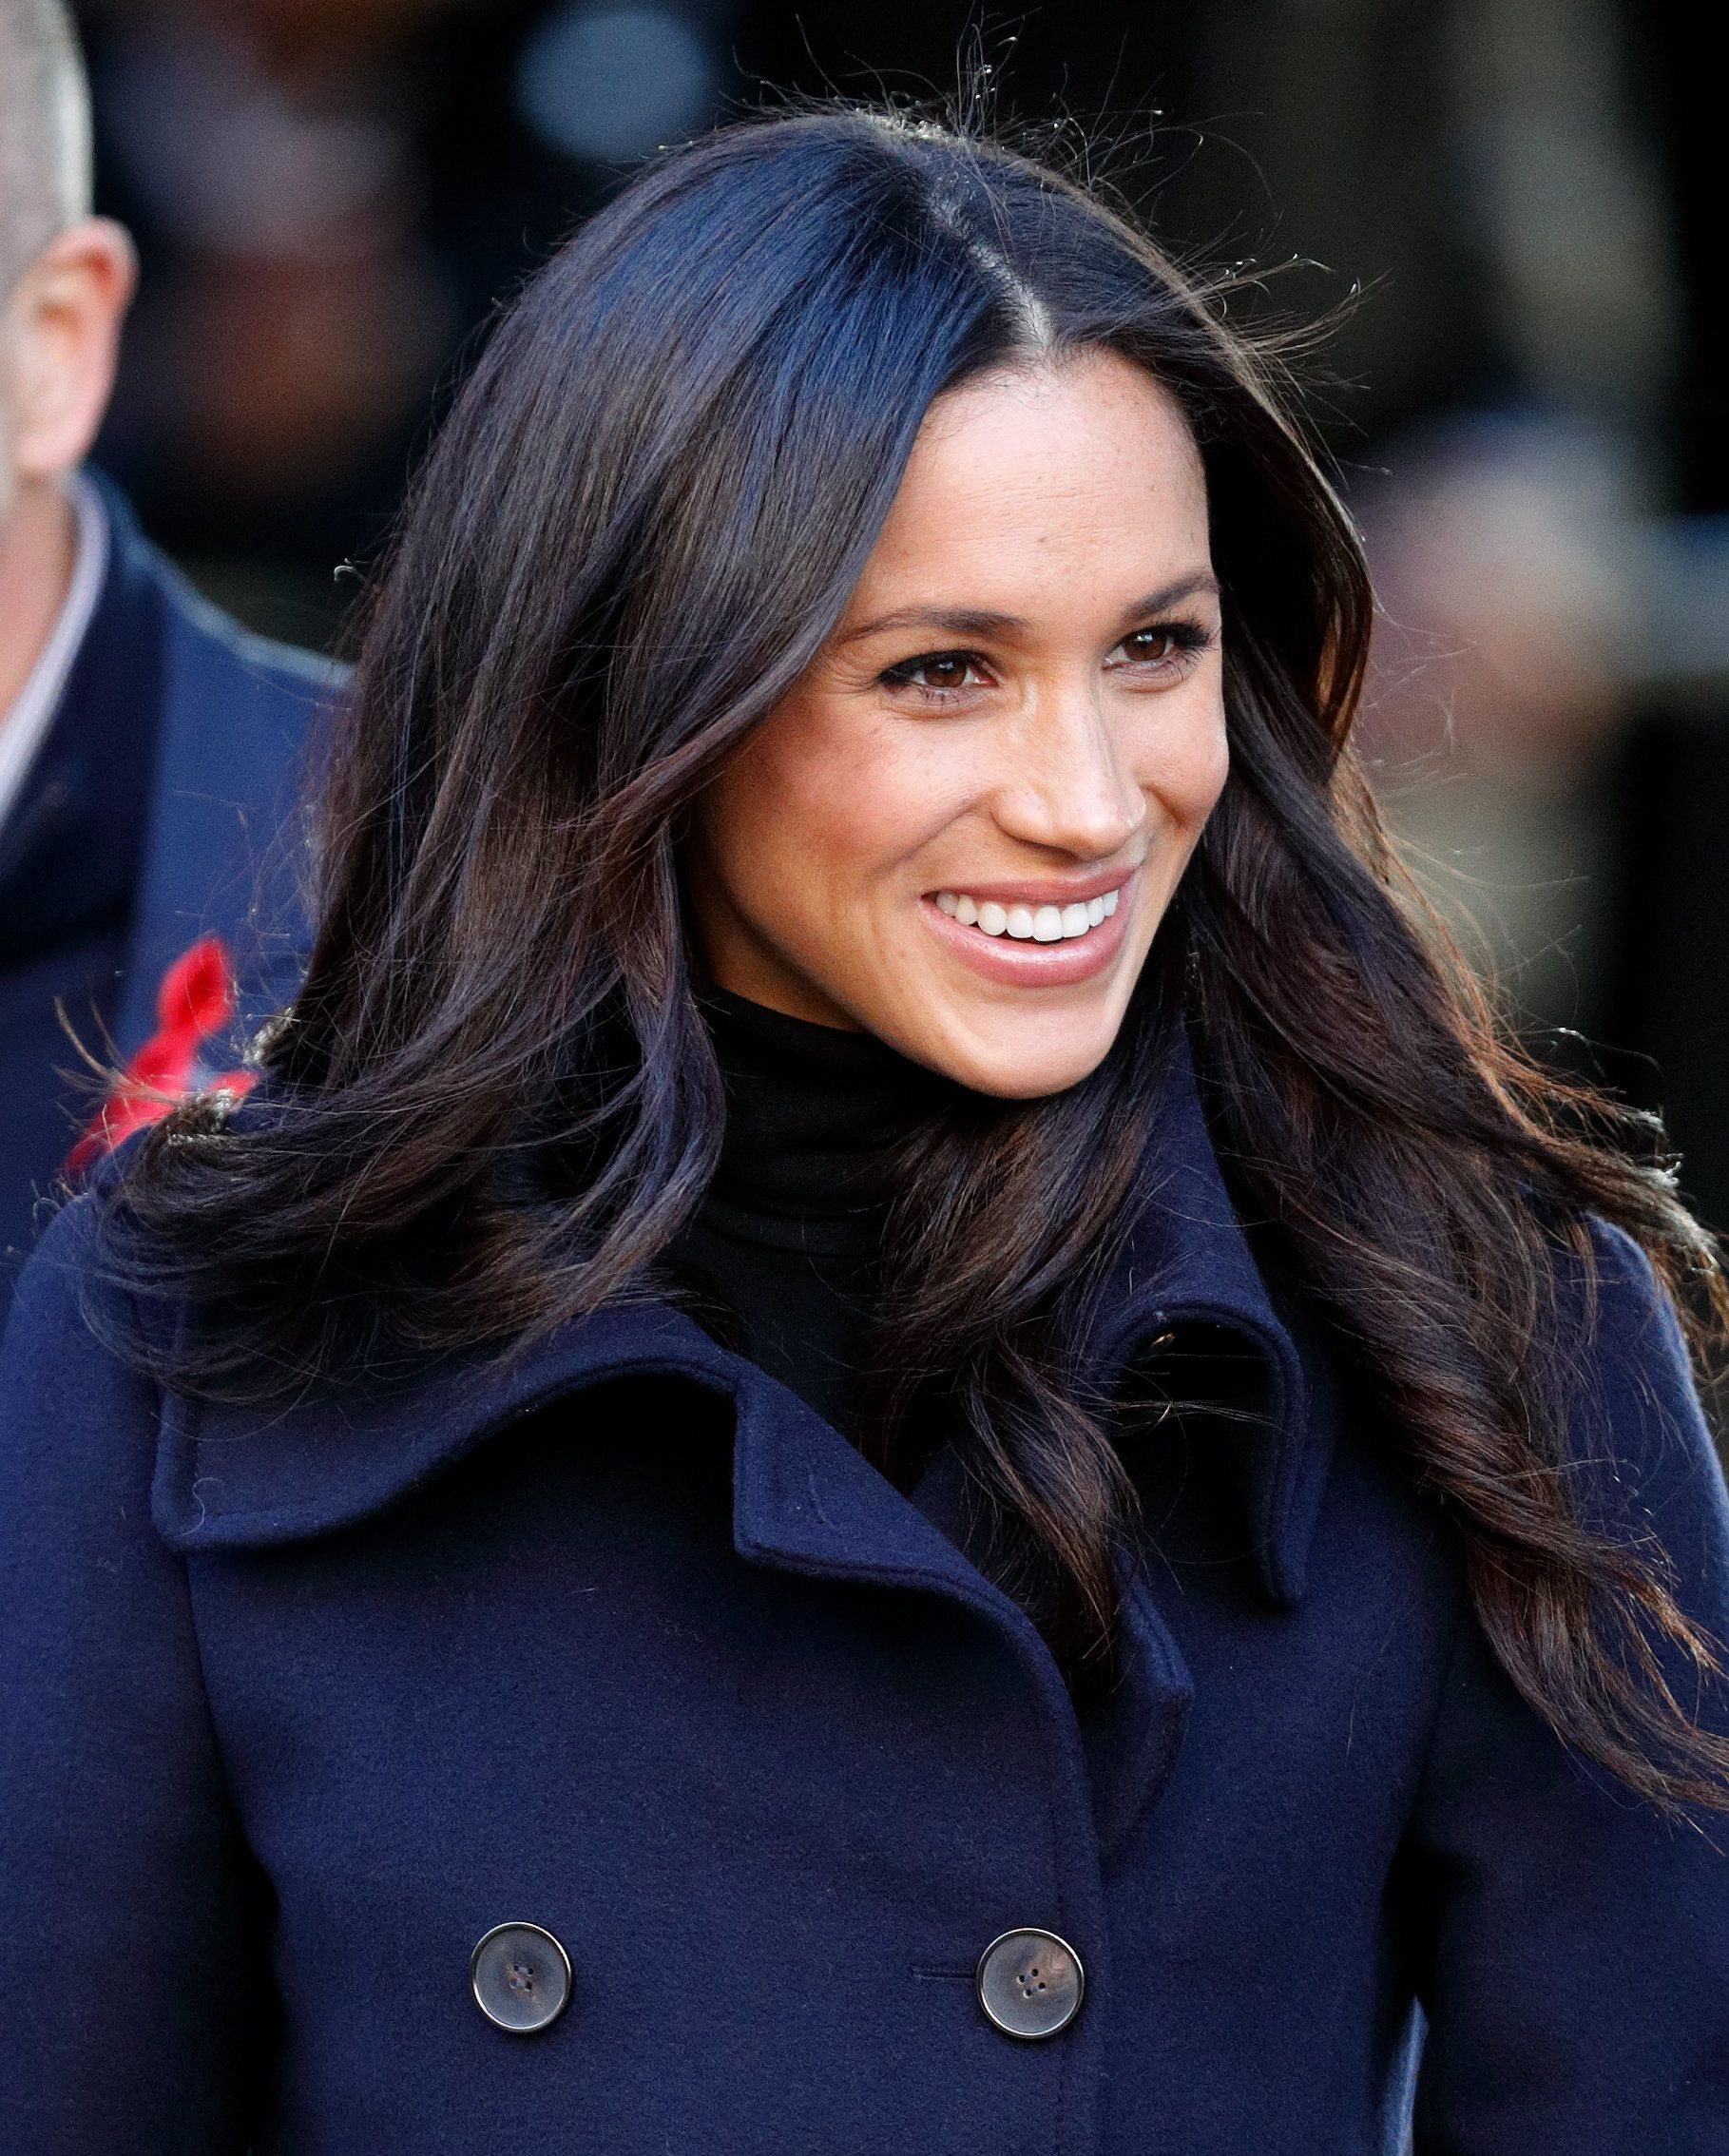 Here's How Meghan Markle Gets Her Signature Hairstyle